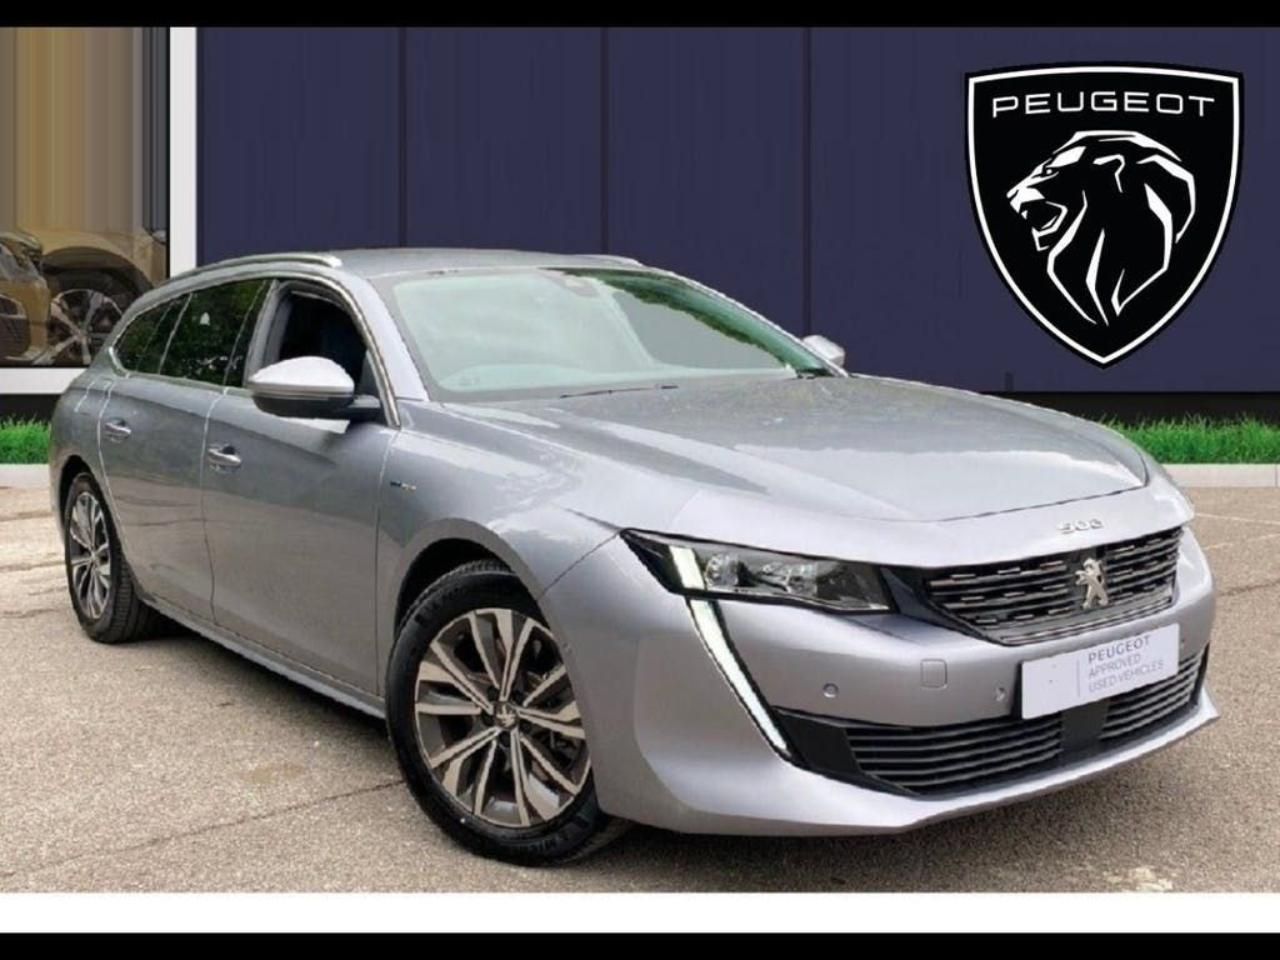 Peugeot 508 SW 1.6 11.8kWh Allure EAT (s/s) 5dr